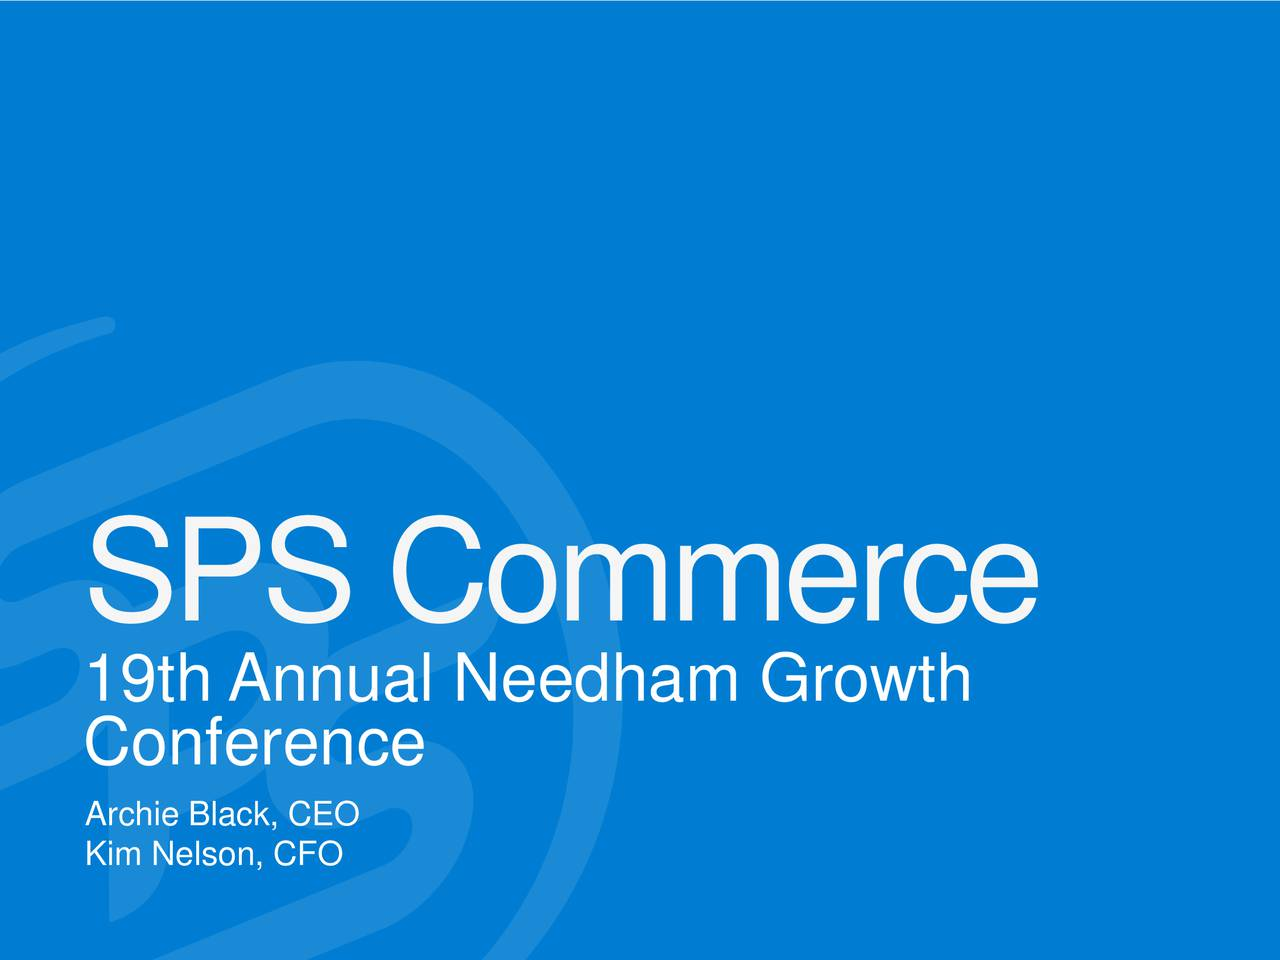 19th Annual Needham Growth Conference Archie Black, CEO Kim Nelson, CFO